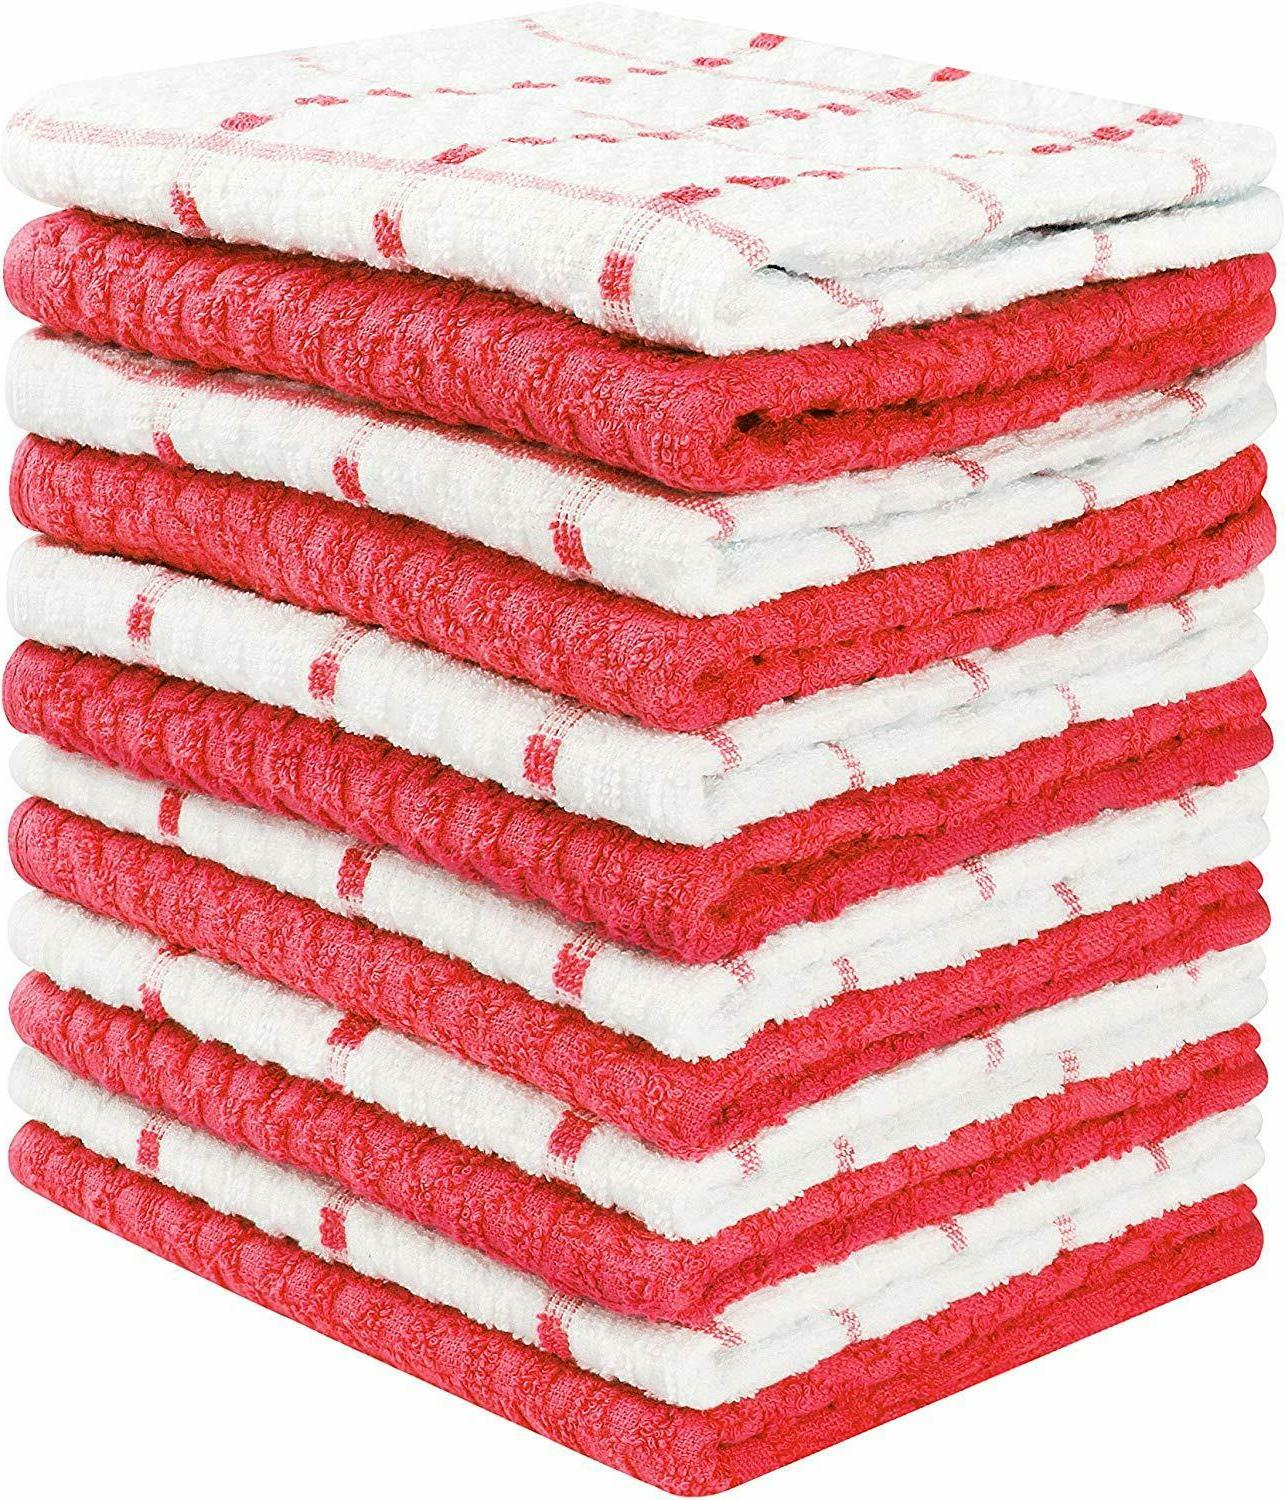 Kitchen Dobby Weave Dish Cloth Pack Lot Towels